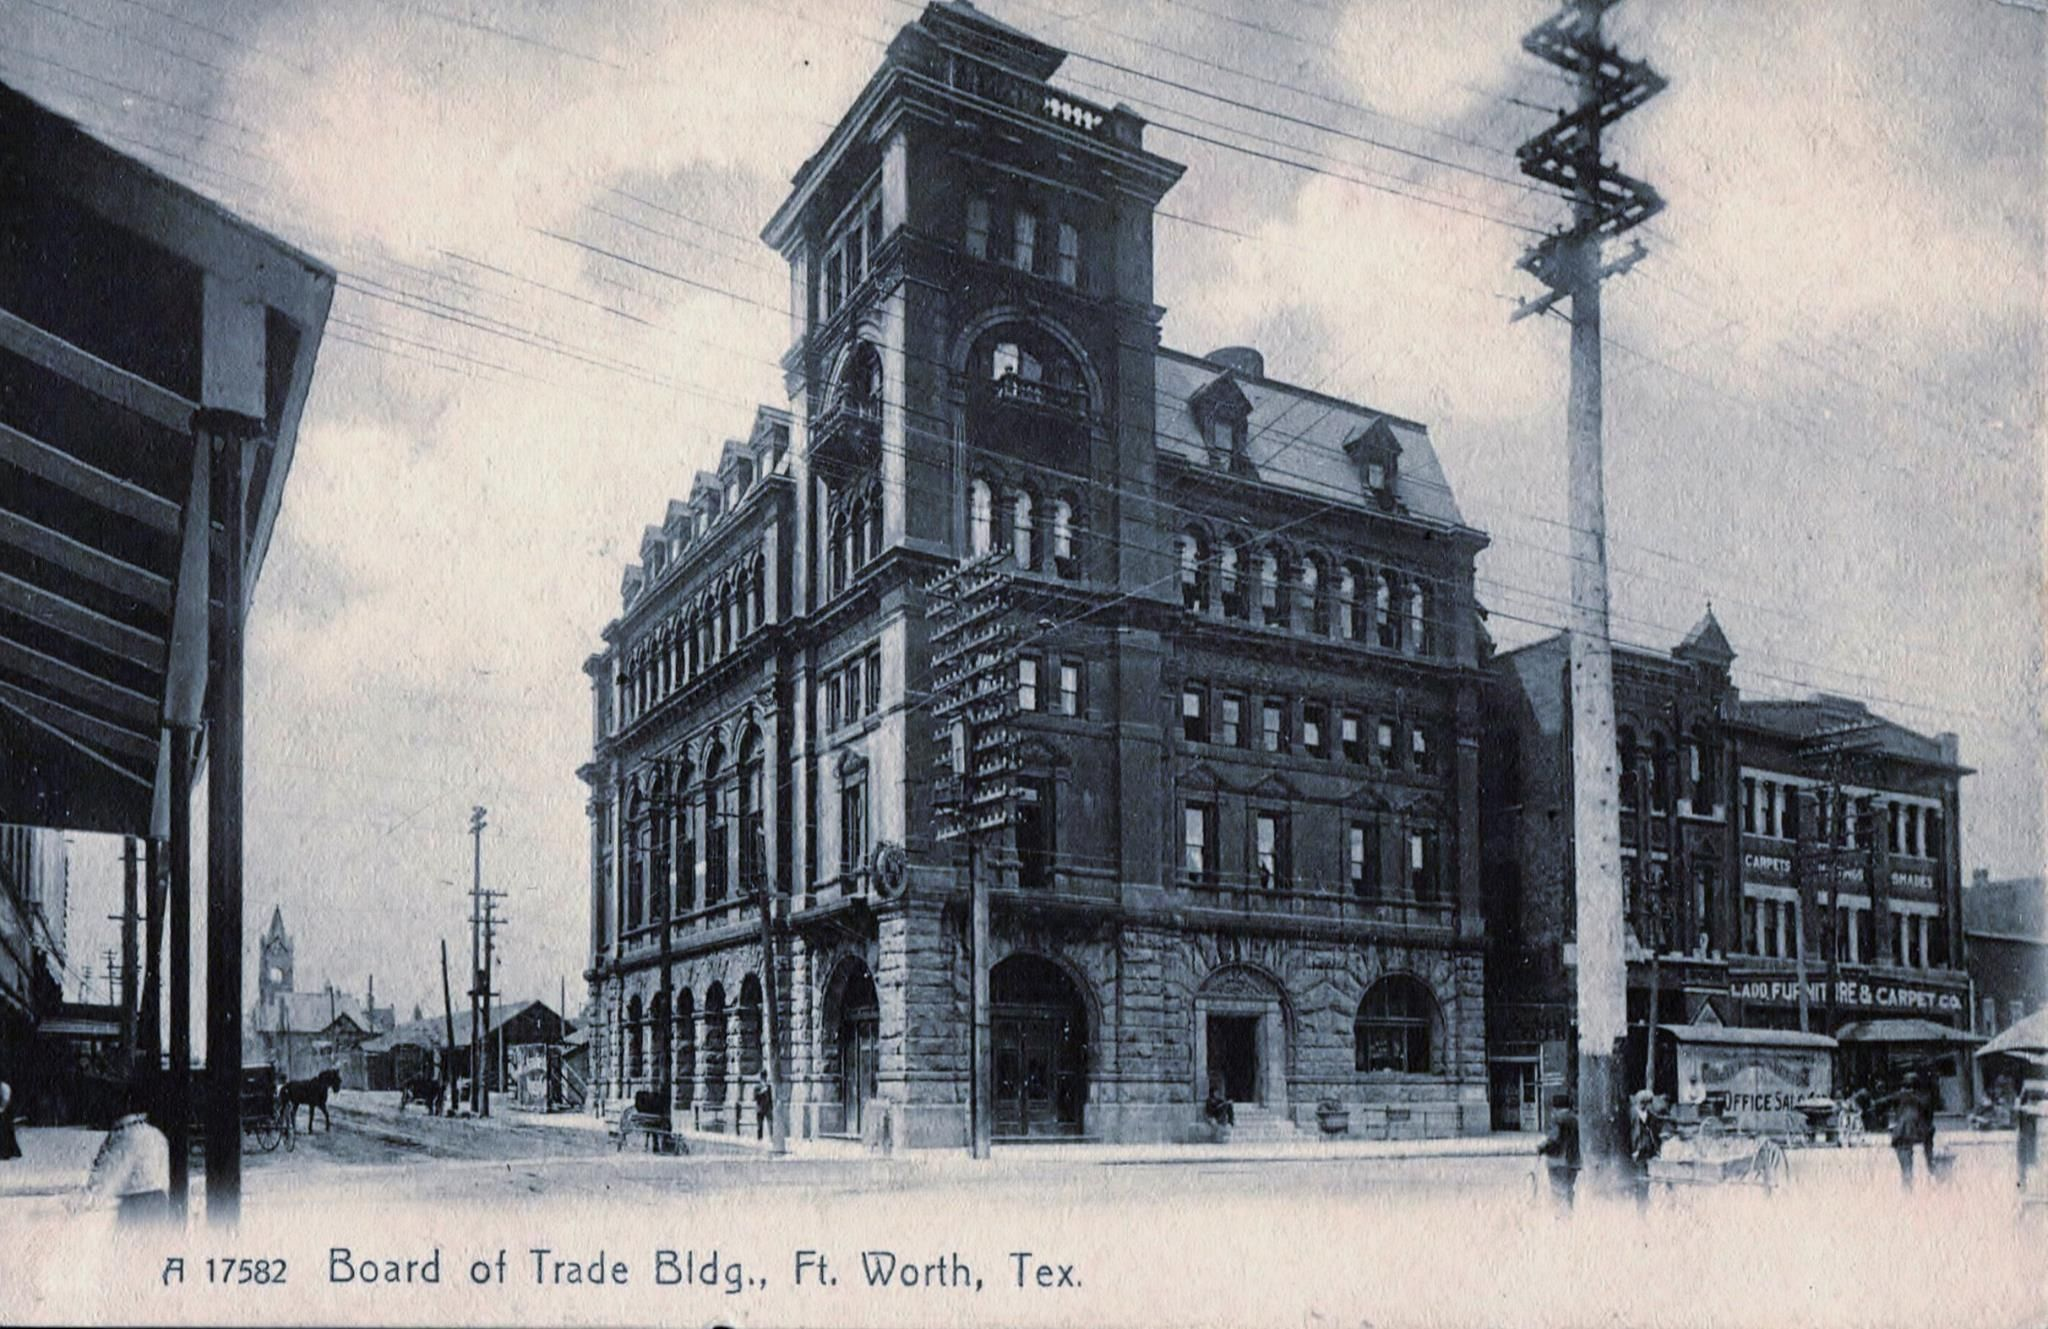 The Board Of Trade Building At The Nw Corner Of 7th Street And Houston In Fort Worth Was Built In The 1880s And Is Reg Fort Worth Texas Build A Fort